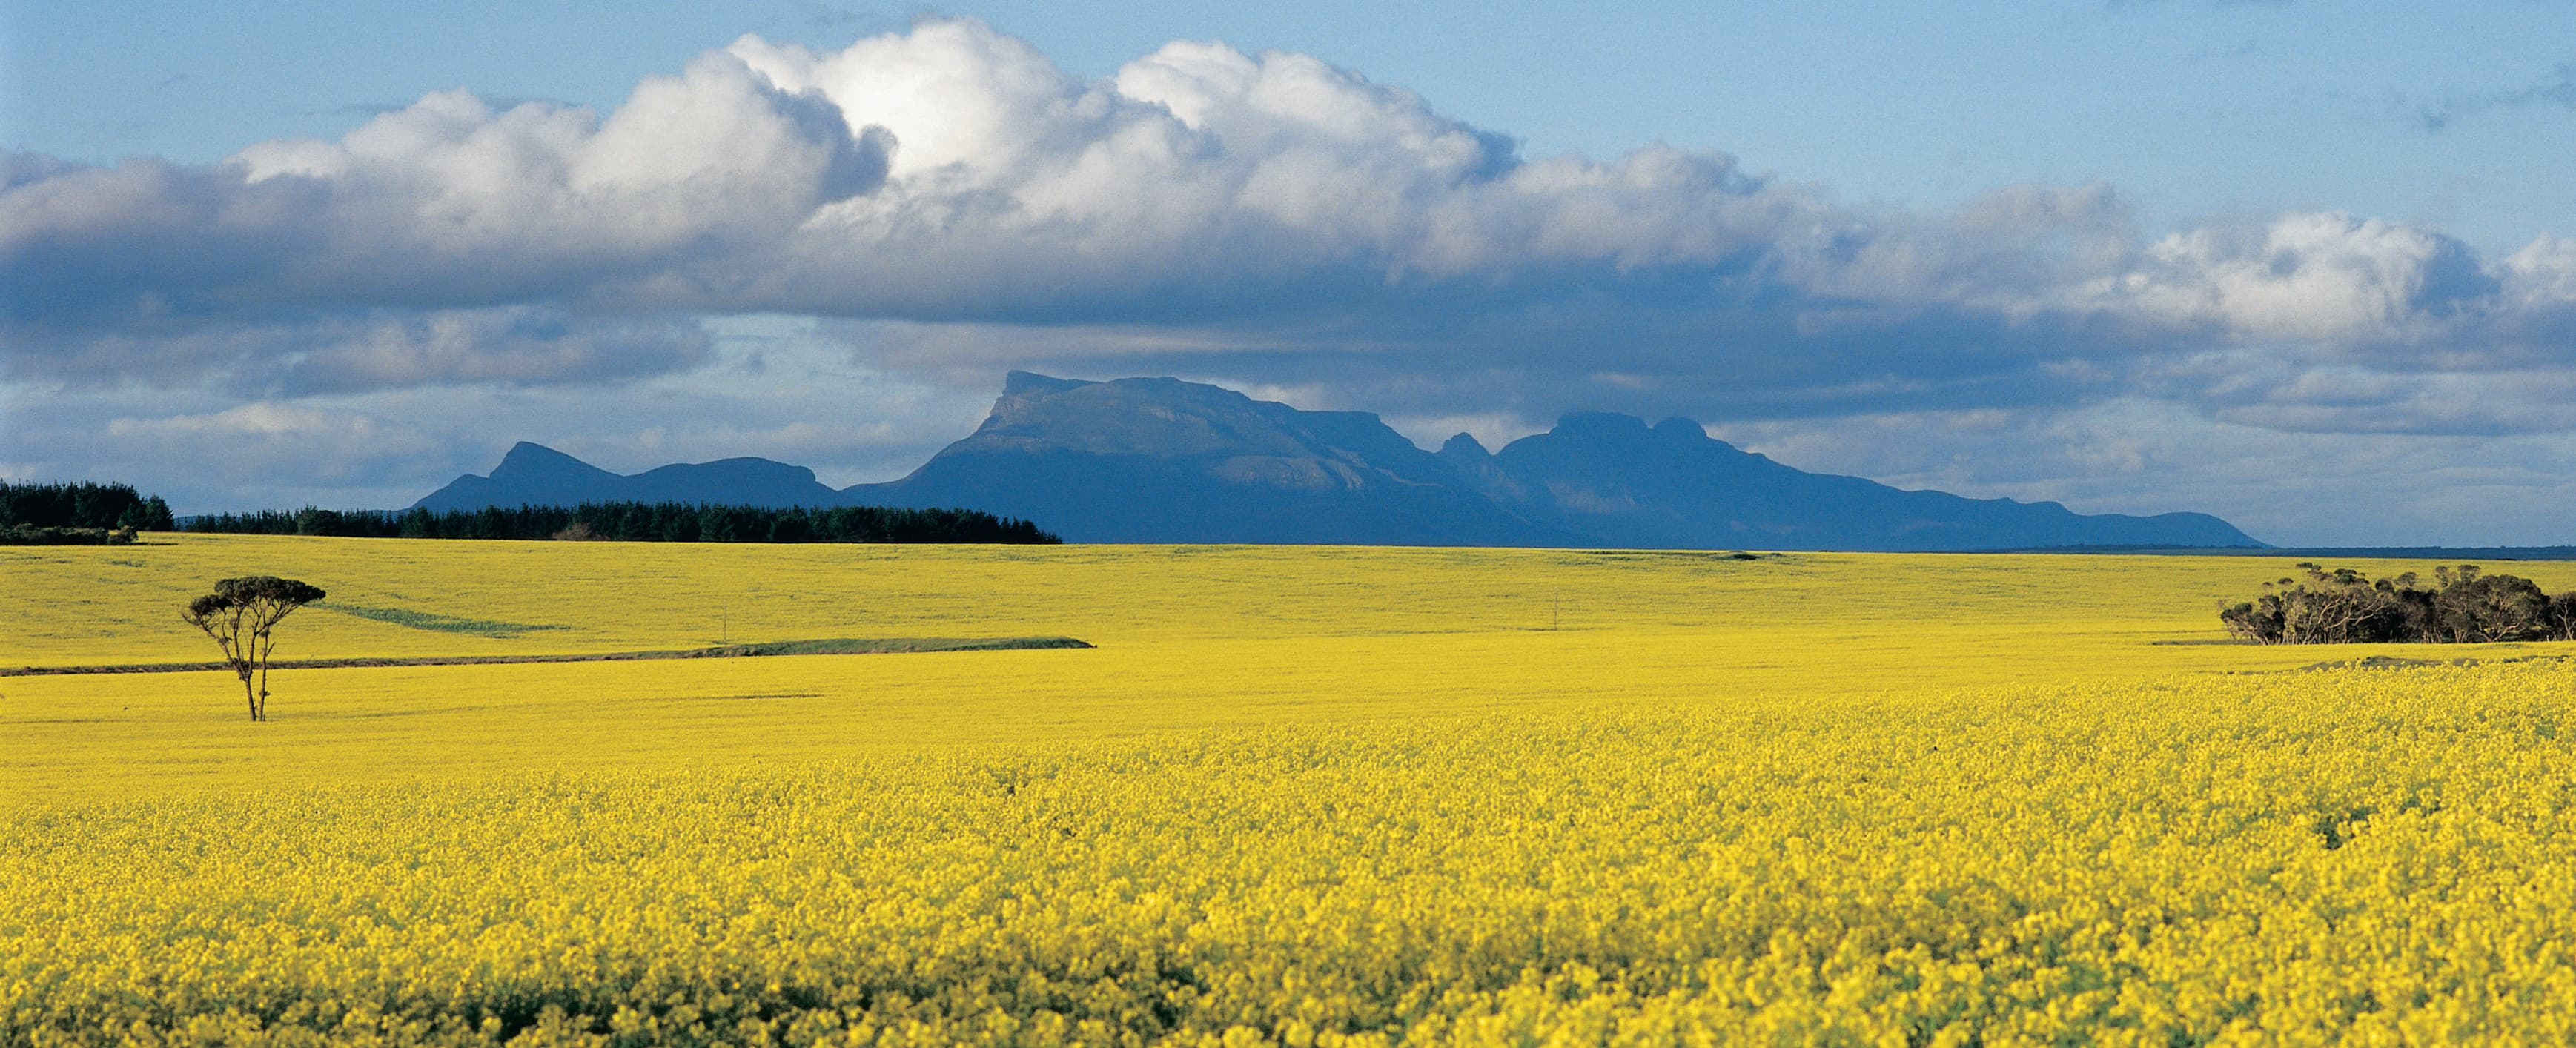 landscape of bright yellow canola fields